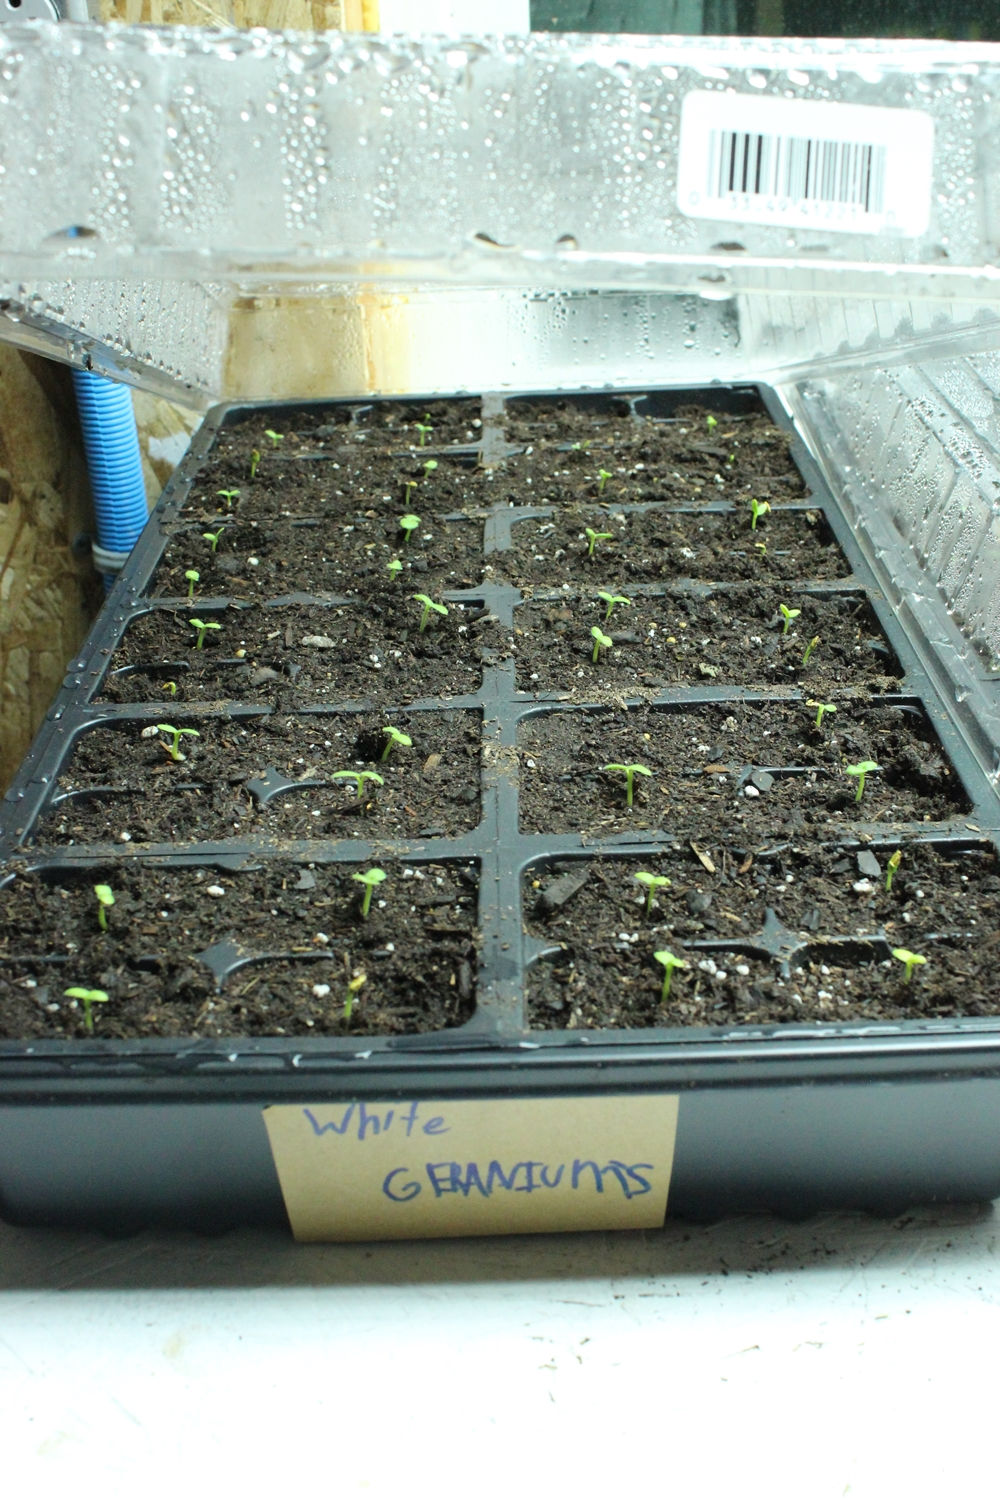 Germinate seeds